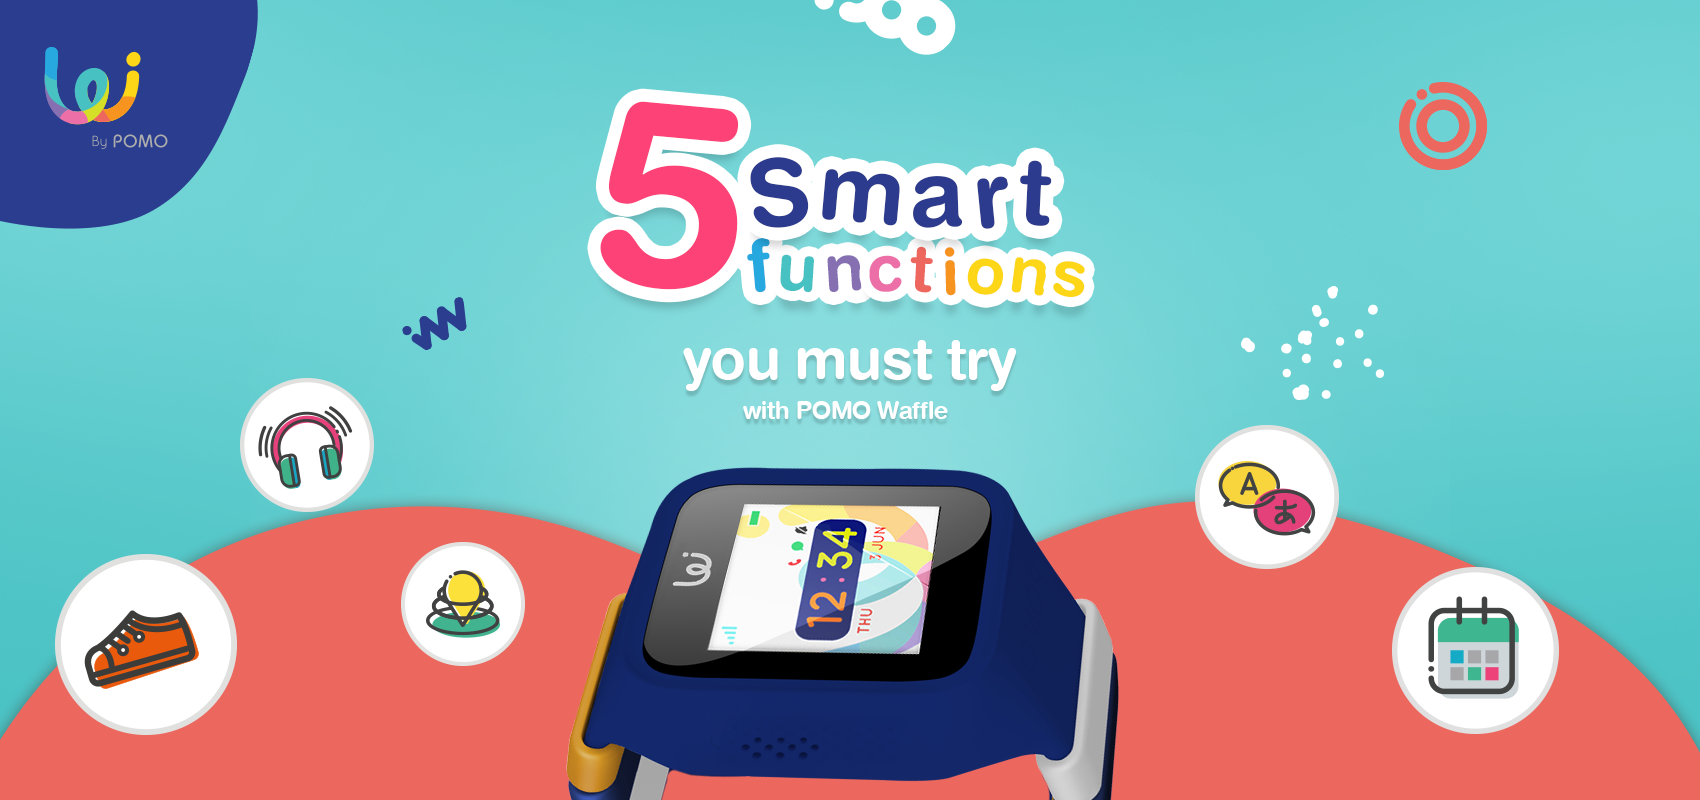 5 Smart Functions You Must Try with POMO Waffle